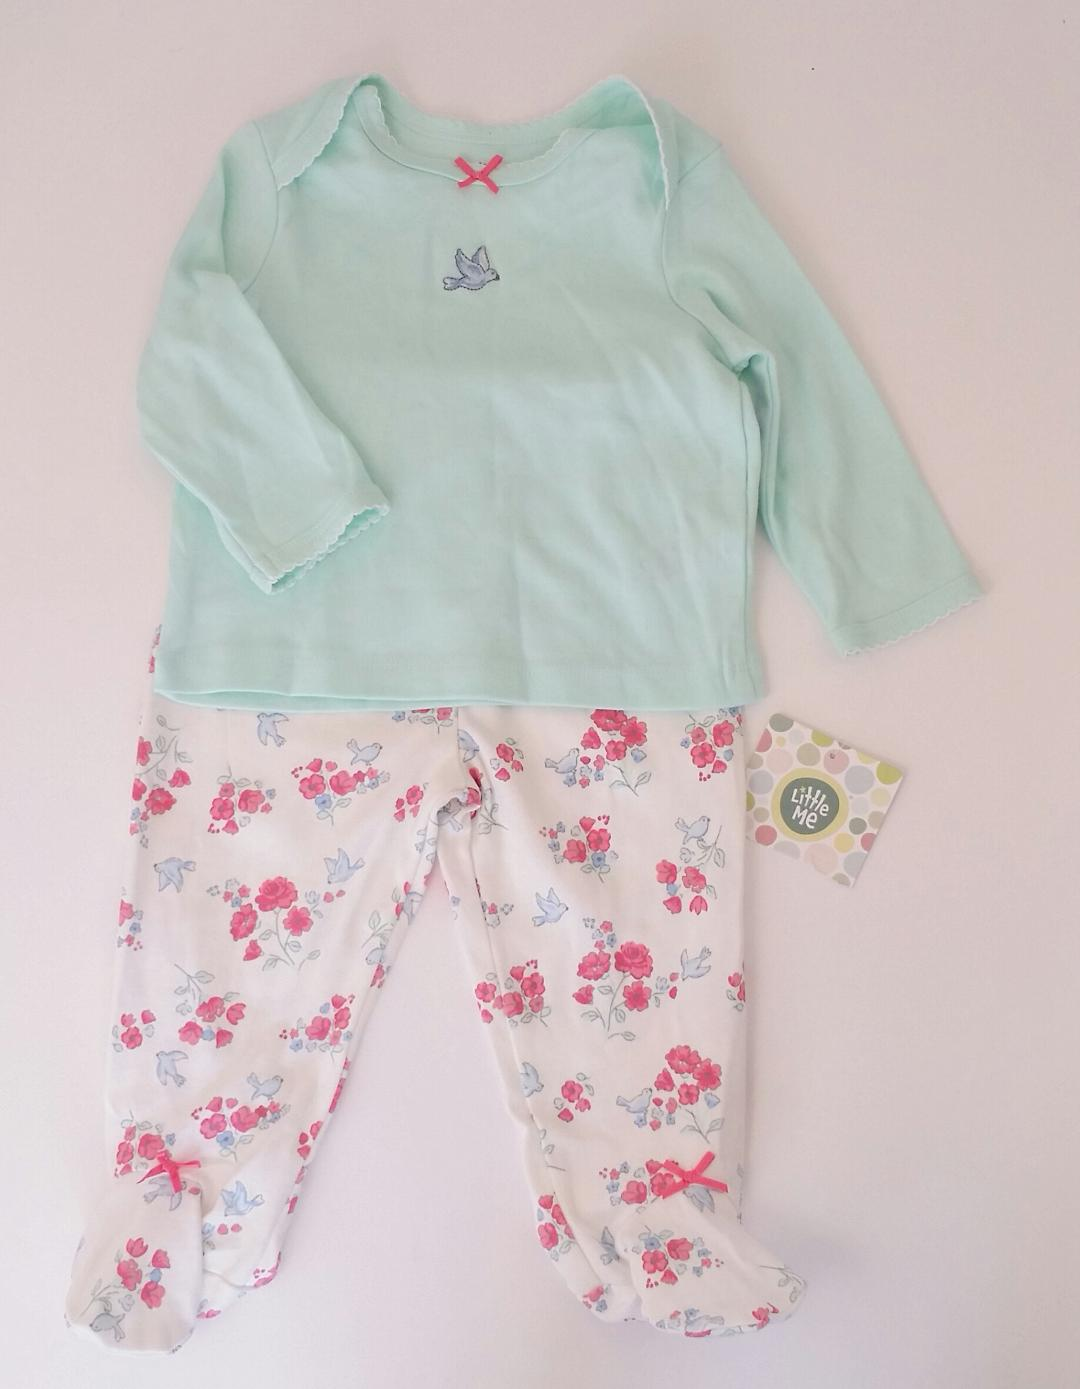 Little-Me--6-12-MONTHS-2-Piece-Outfit_2143287A.jpg